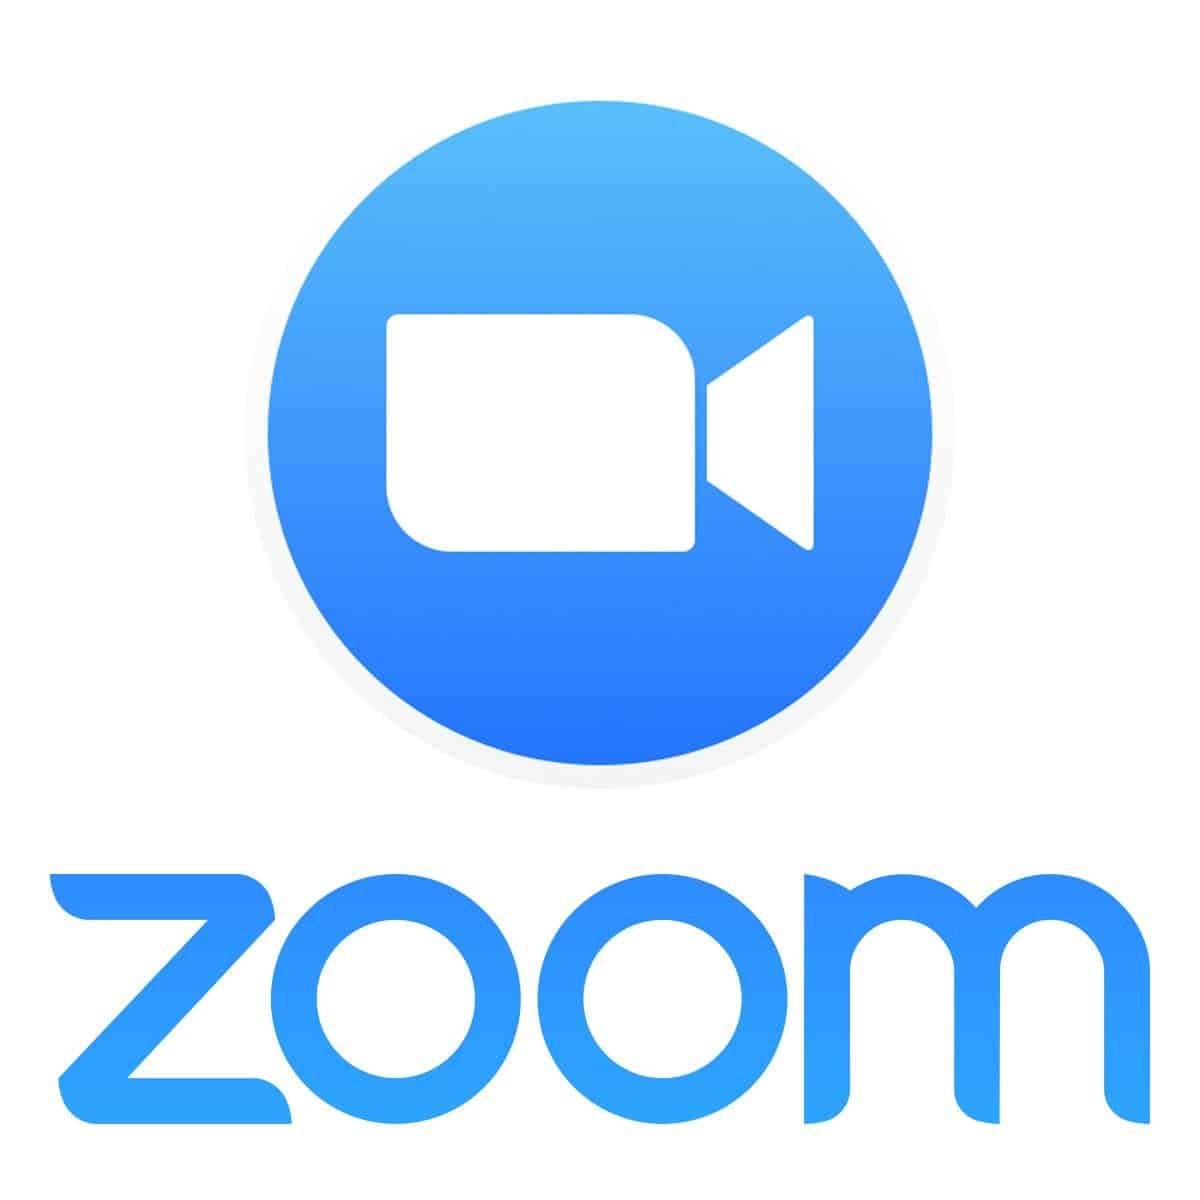 The New Zoom Update: Where you're calls are routed to beginning April 18